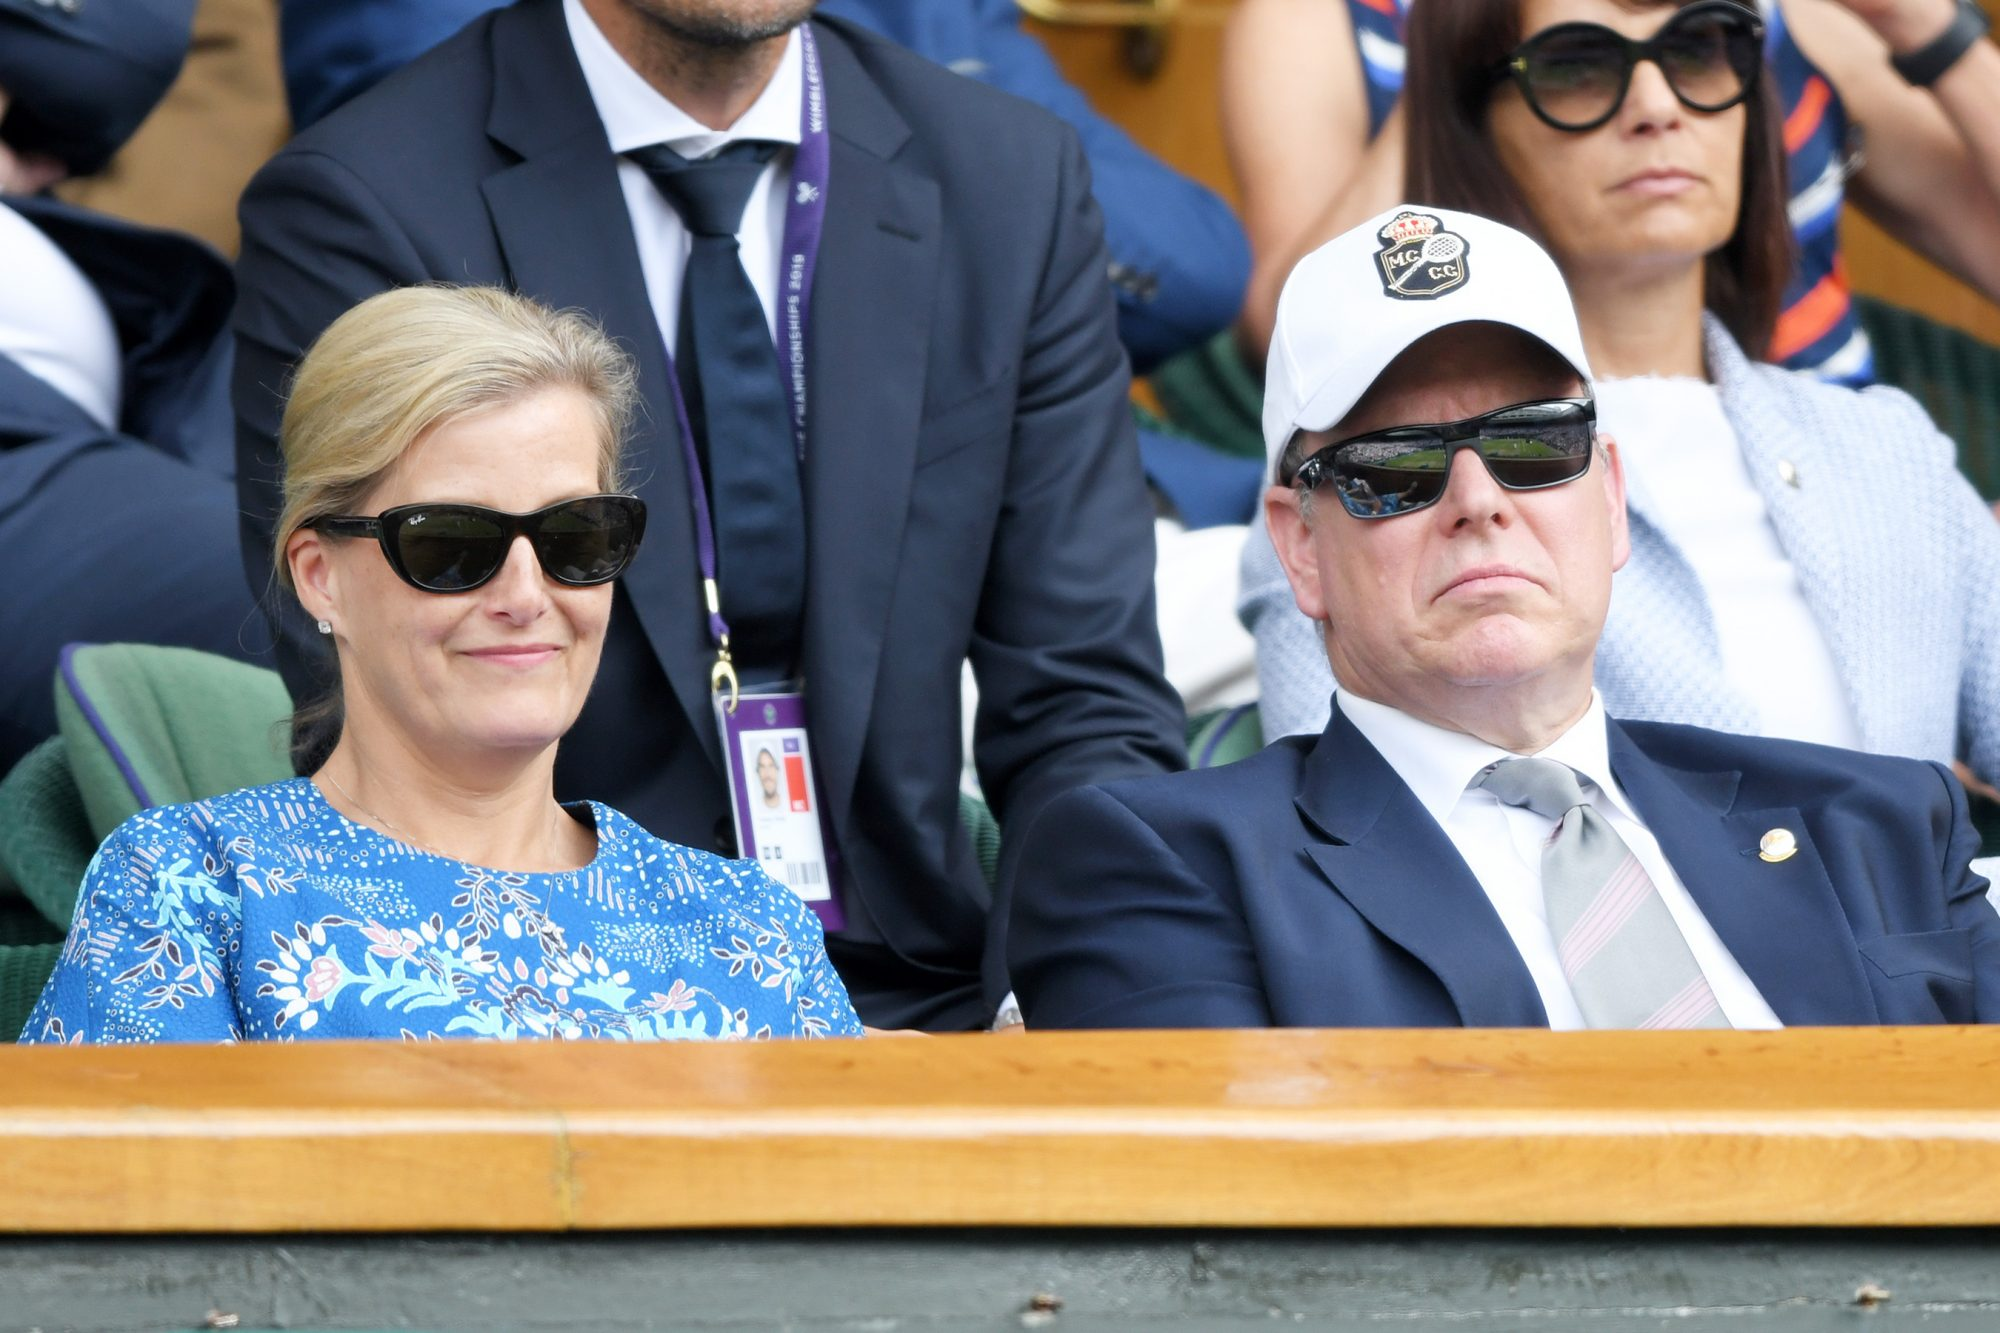 Wimbledon Sophie Countess of Wessex and Prince Albert II of Monaco